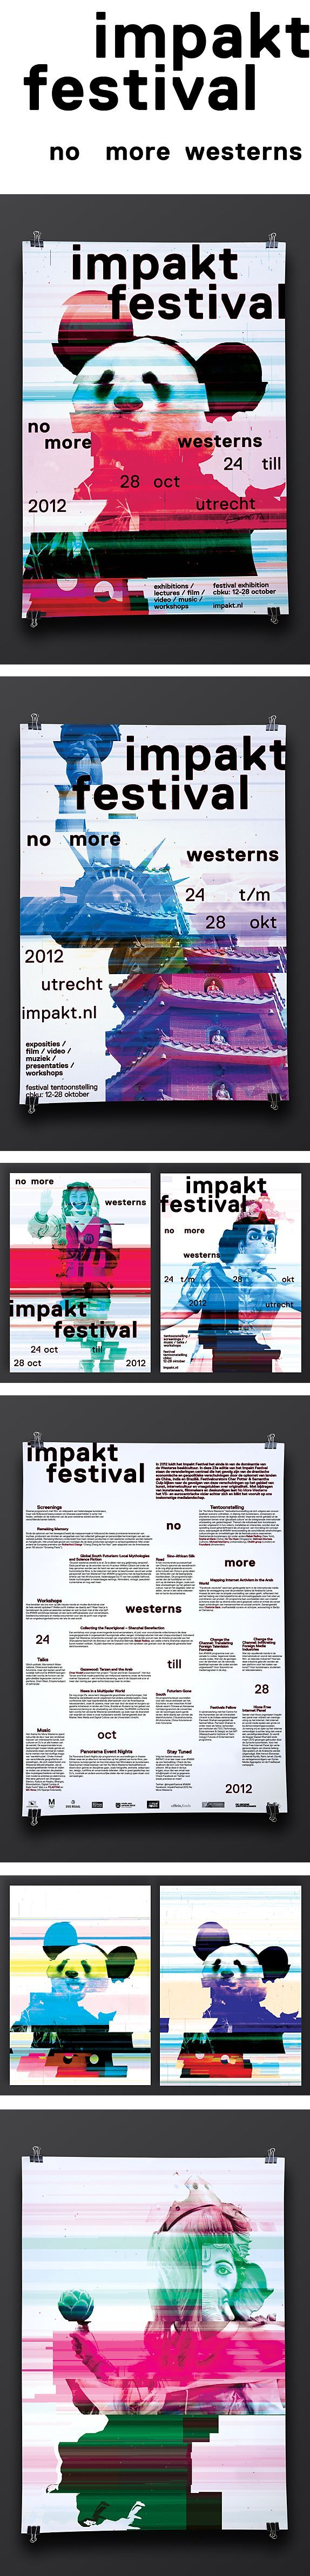 Corporate Design, ID, Logo, Poster, Print, Impakt Festival 2012, by Lava Graphic Design, Amsterdam, NL - @Lava